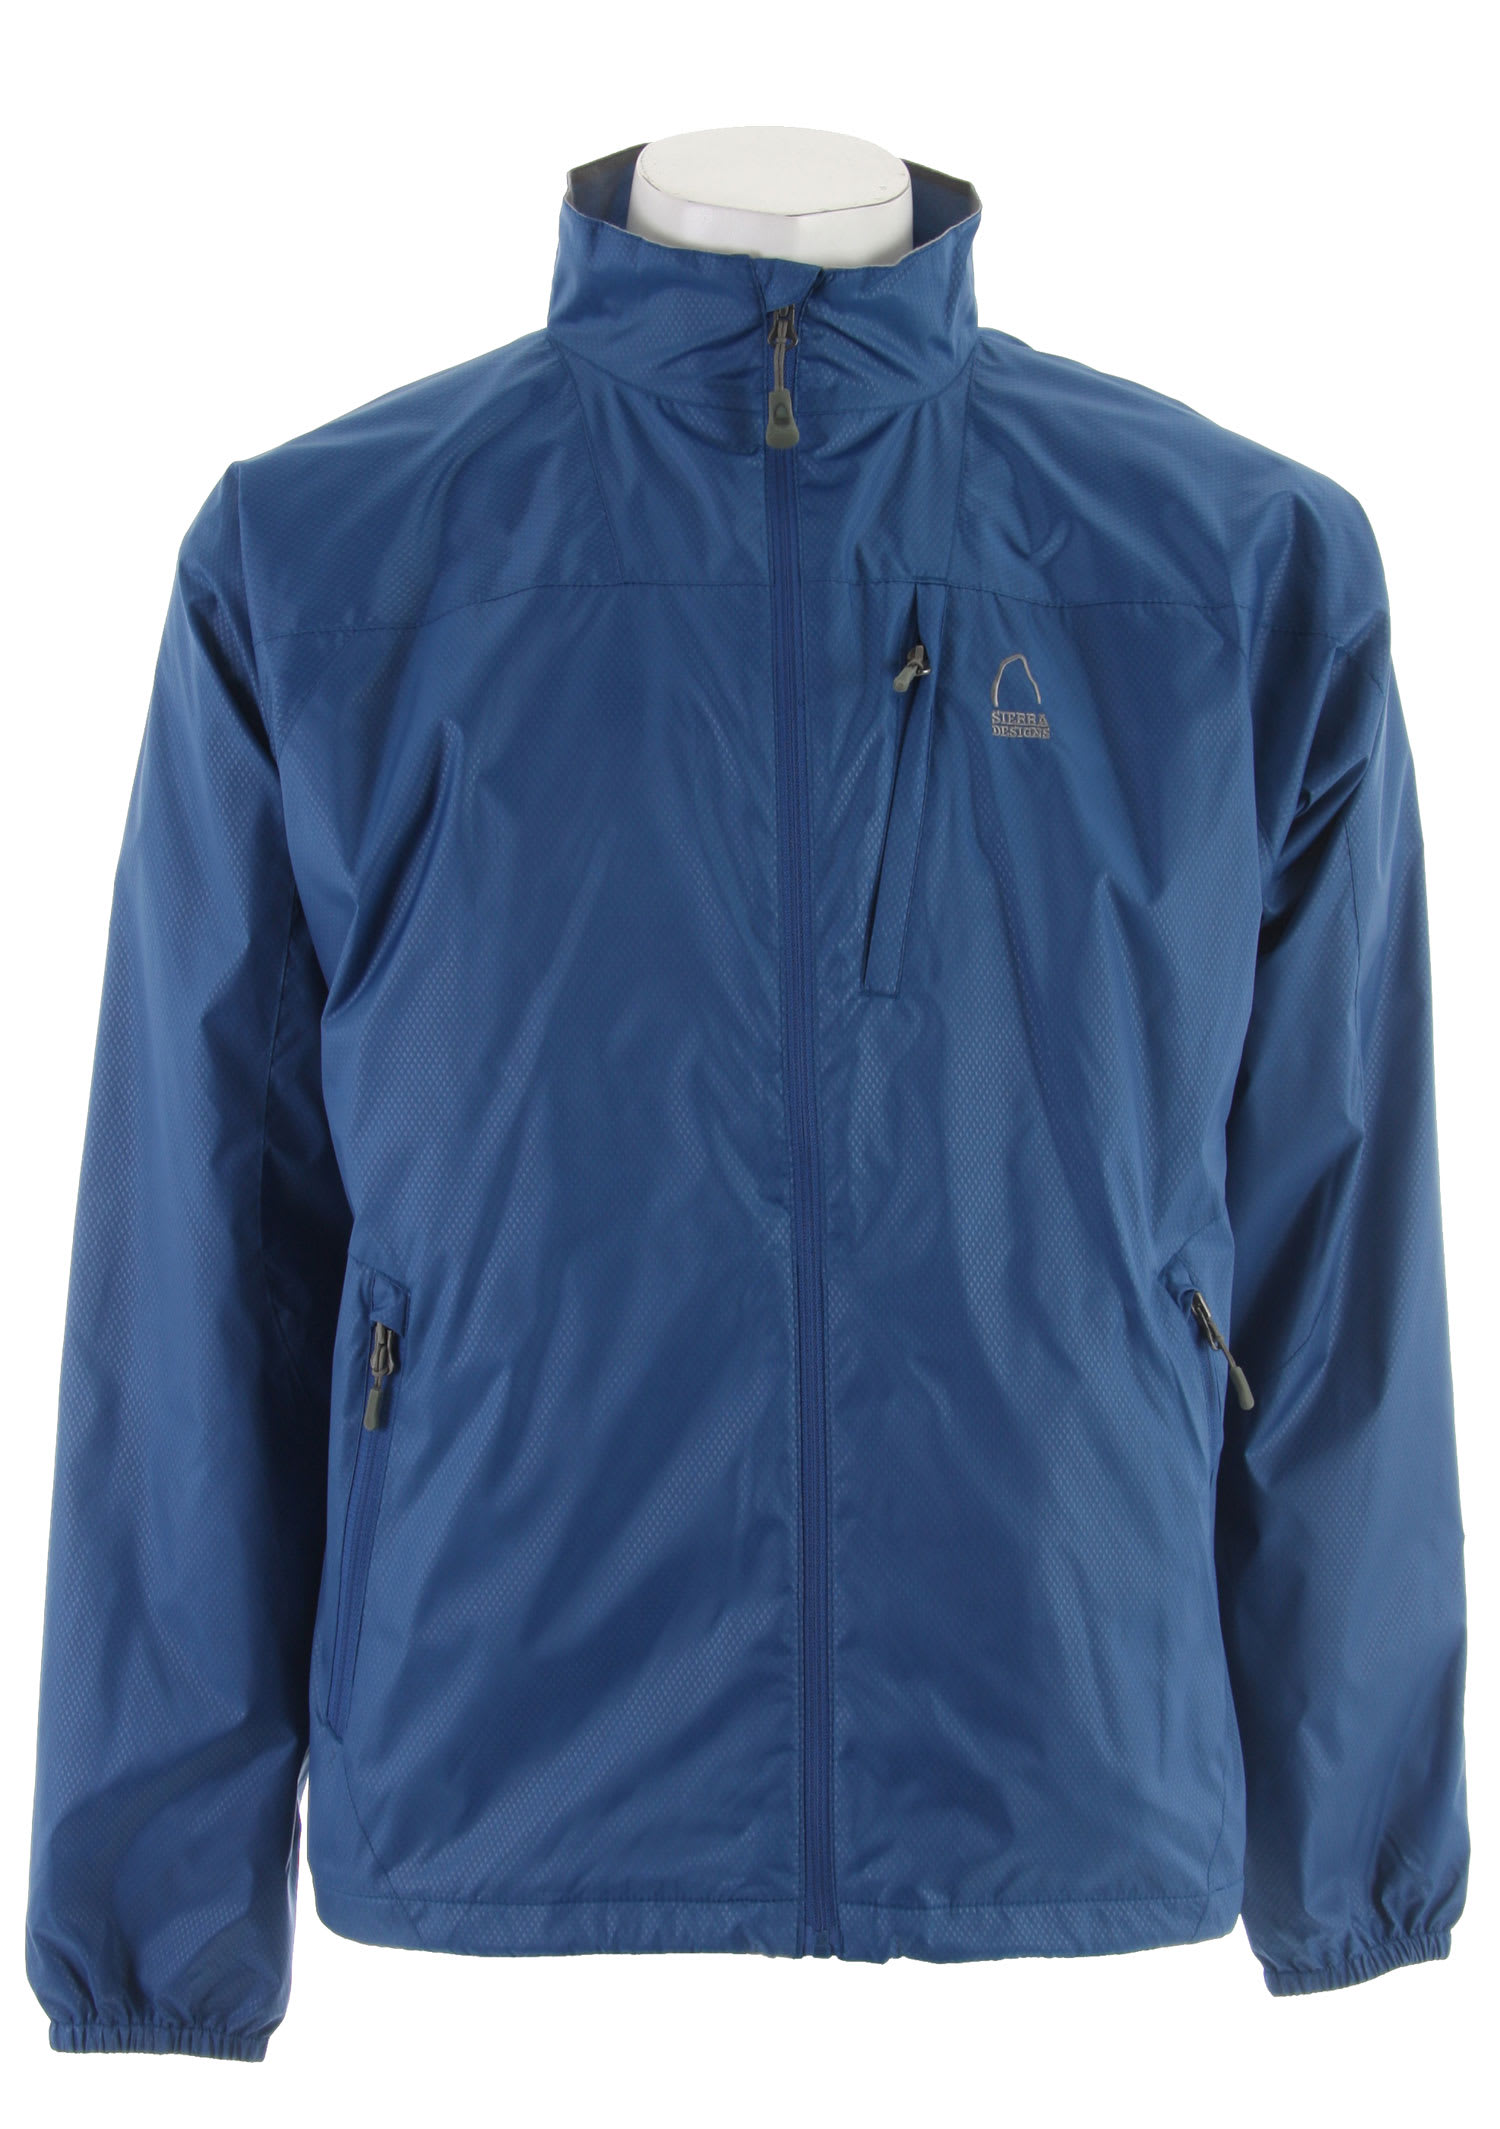 Shop for Sierra Designs Microlight Accelerator Shell Jacket True Blue - Men's